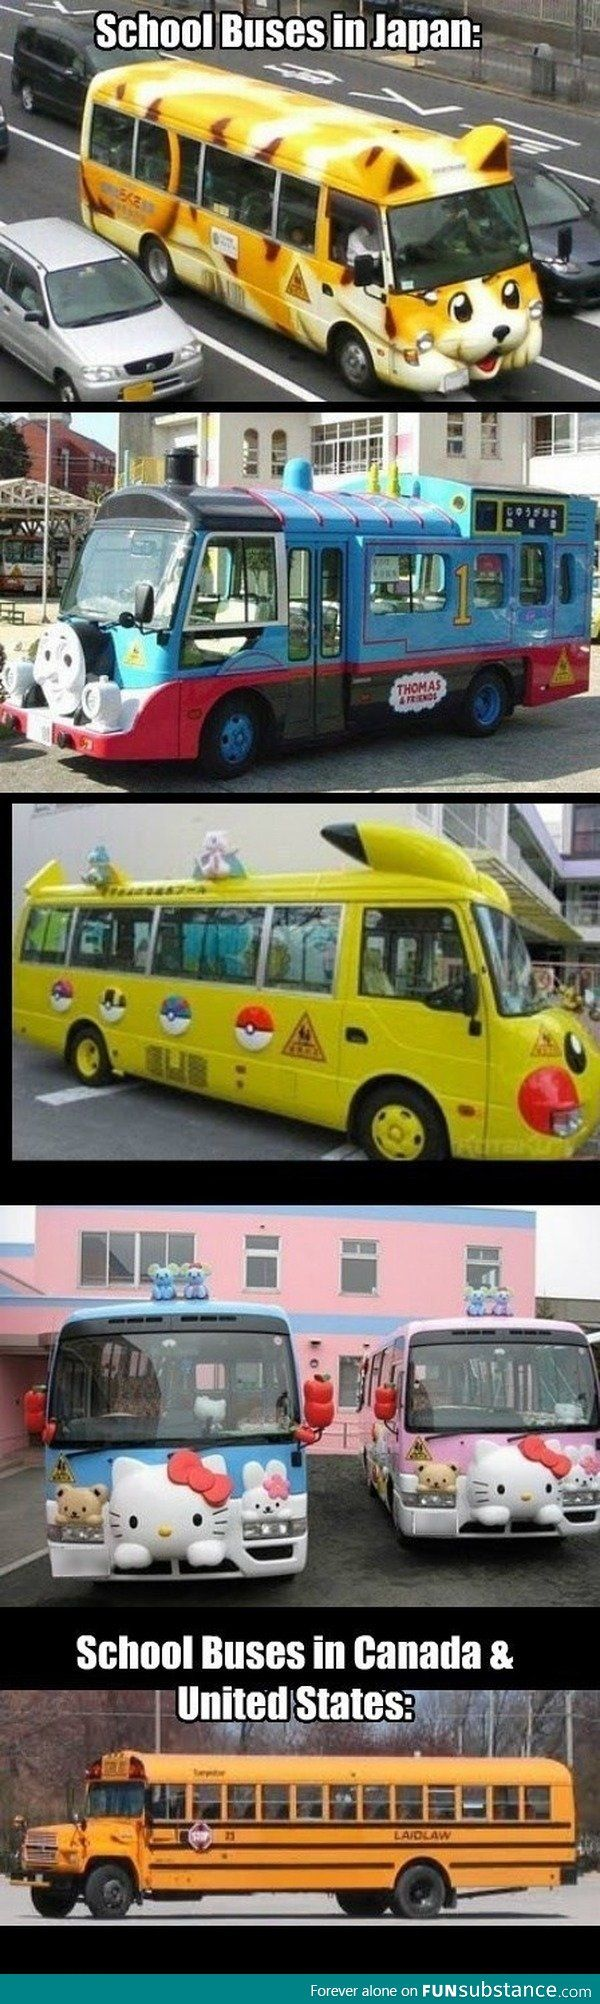 Japanese vs. American school buses